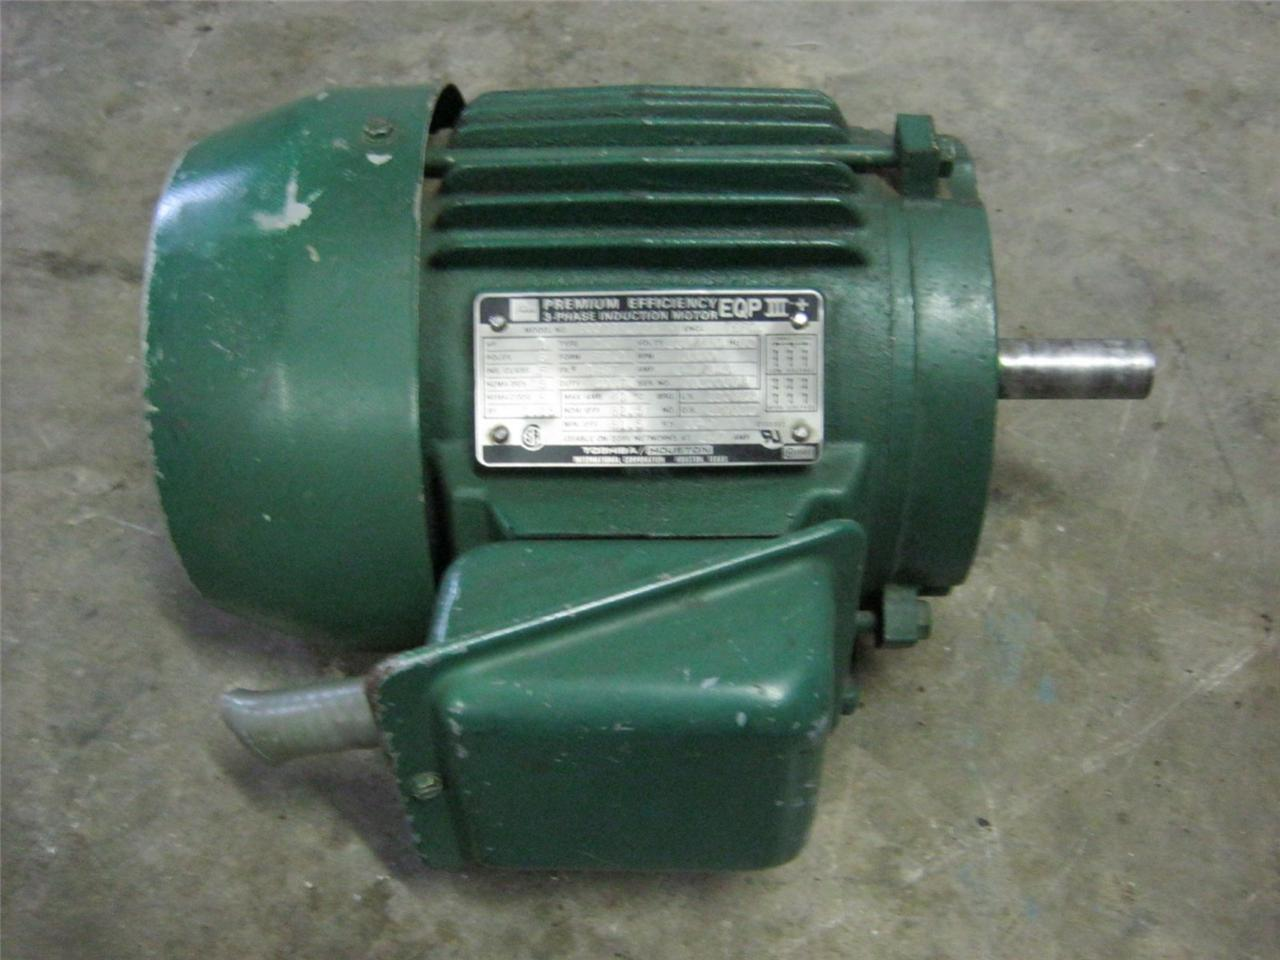 Toshiba peremium efficiency 3 phase induction motor eqp3 1 for 3 phase induction motor